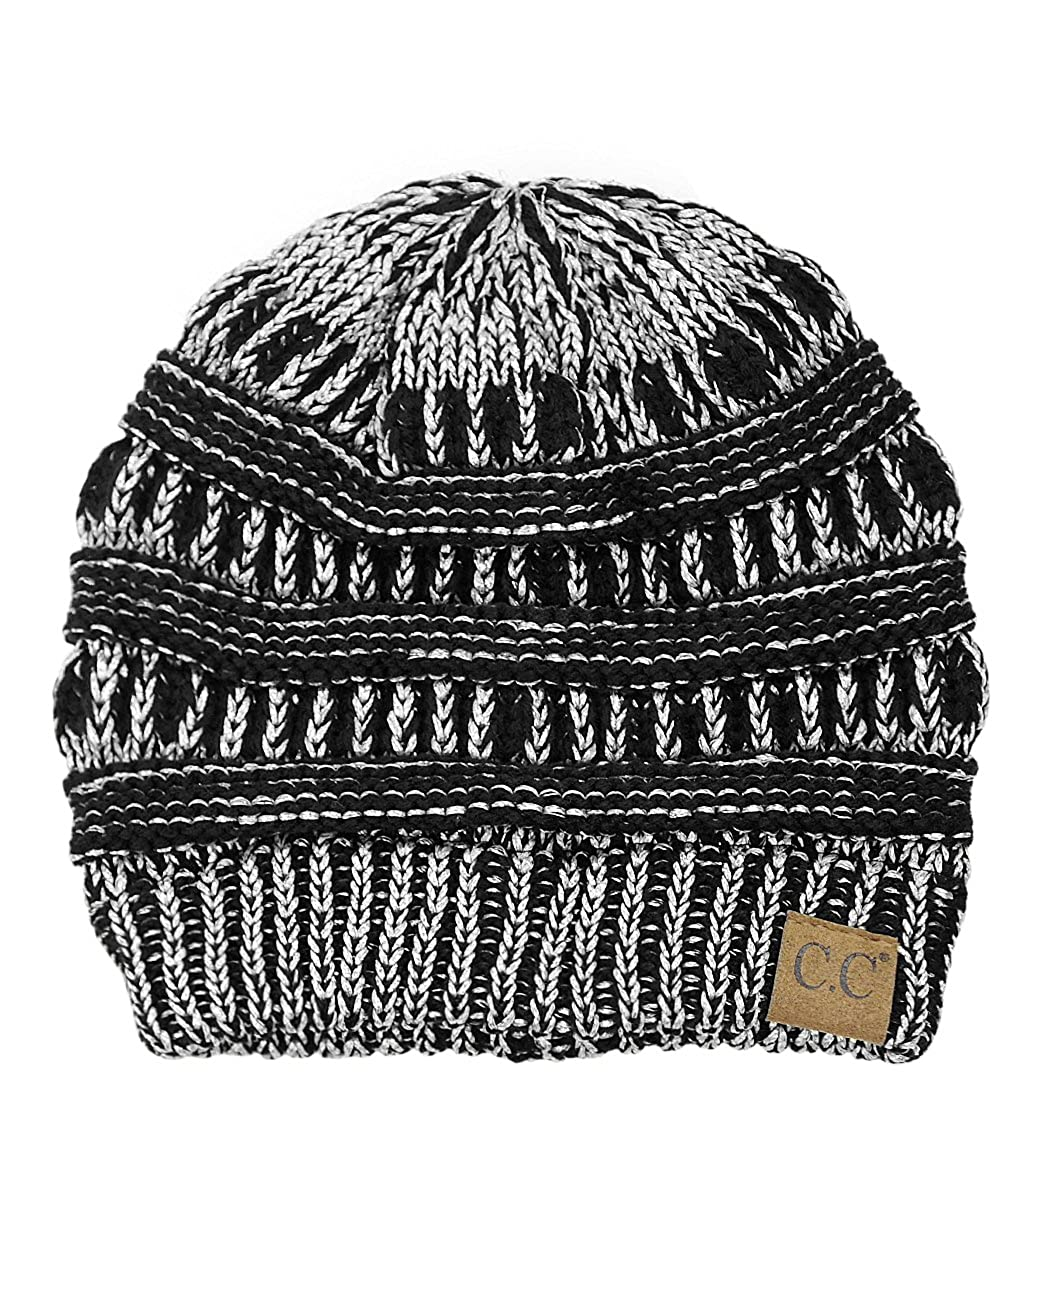 fc3869f9361 C.C Trendy Warm Chunky Soft Stretch Cable Knit Beanie Skully (2 Tone Black  Dark Beige) at Amazon Women s Clothing store